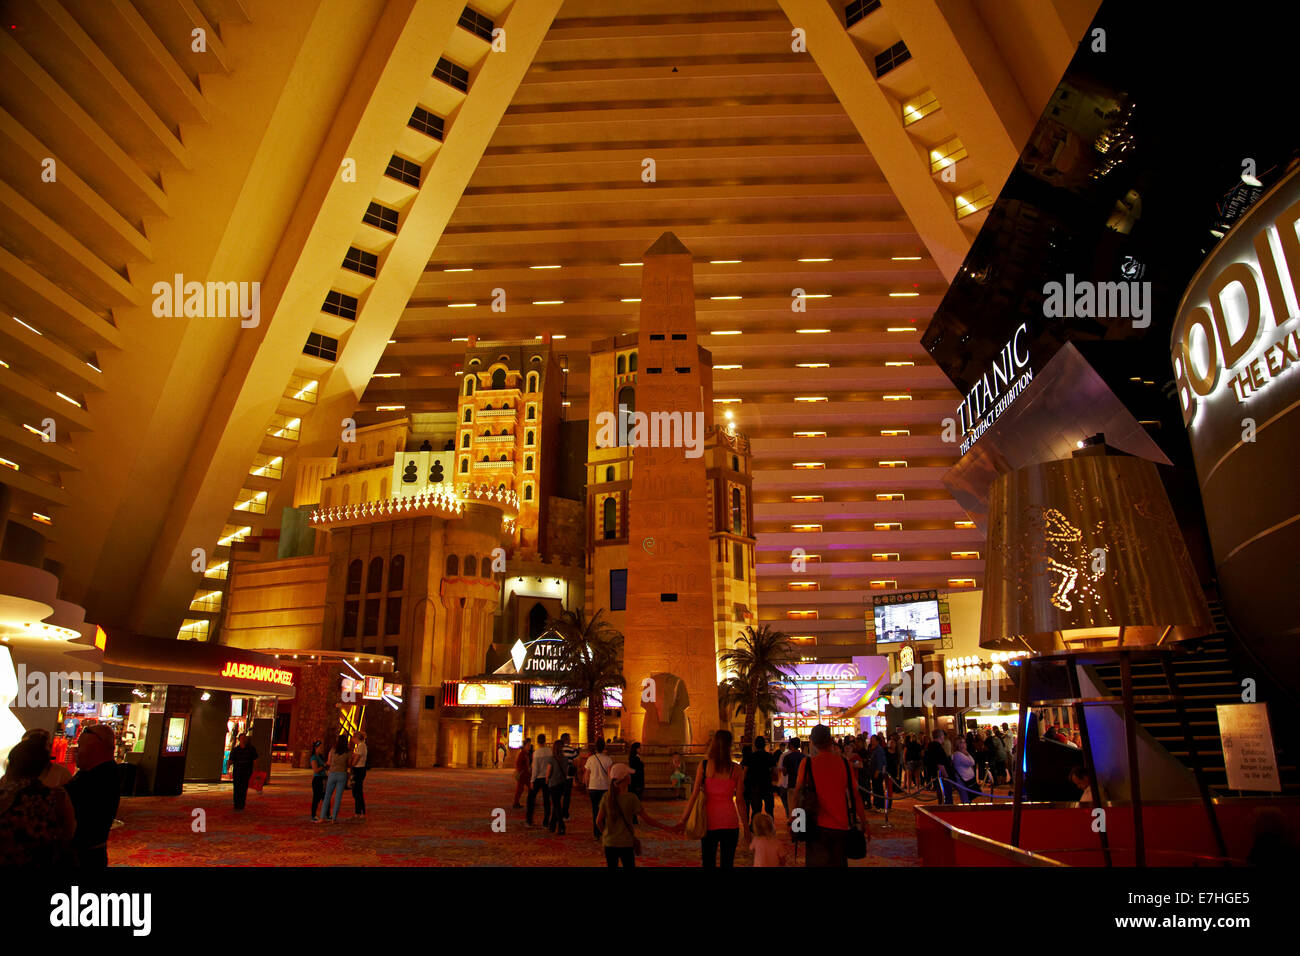 Lobby and hotel rooms high in interior of pyramid at Luxor Hotel and ...